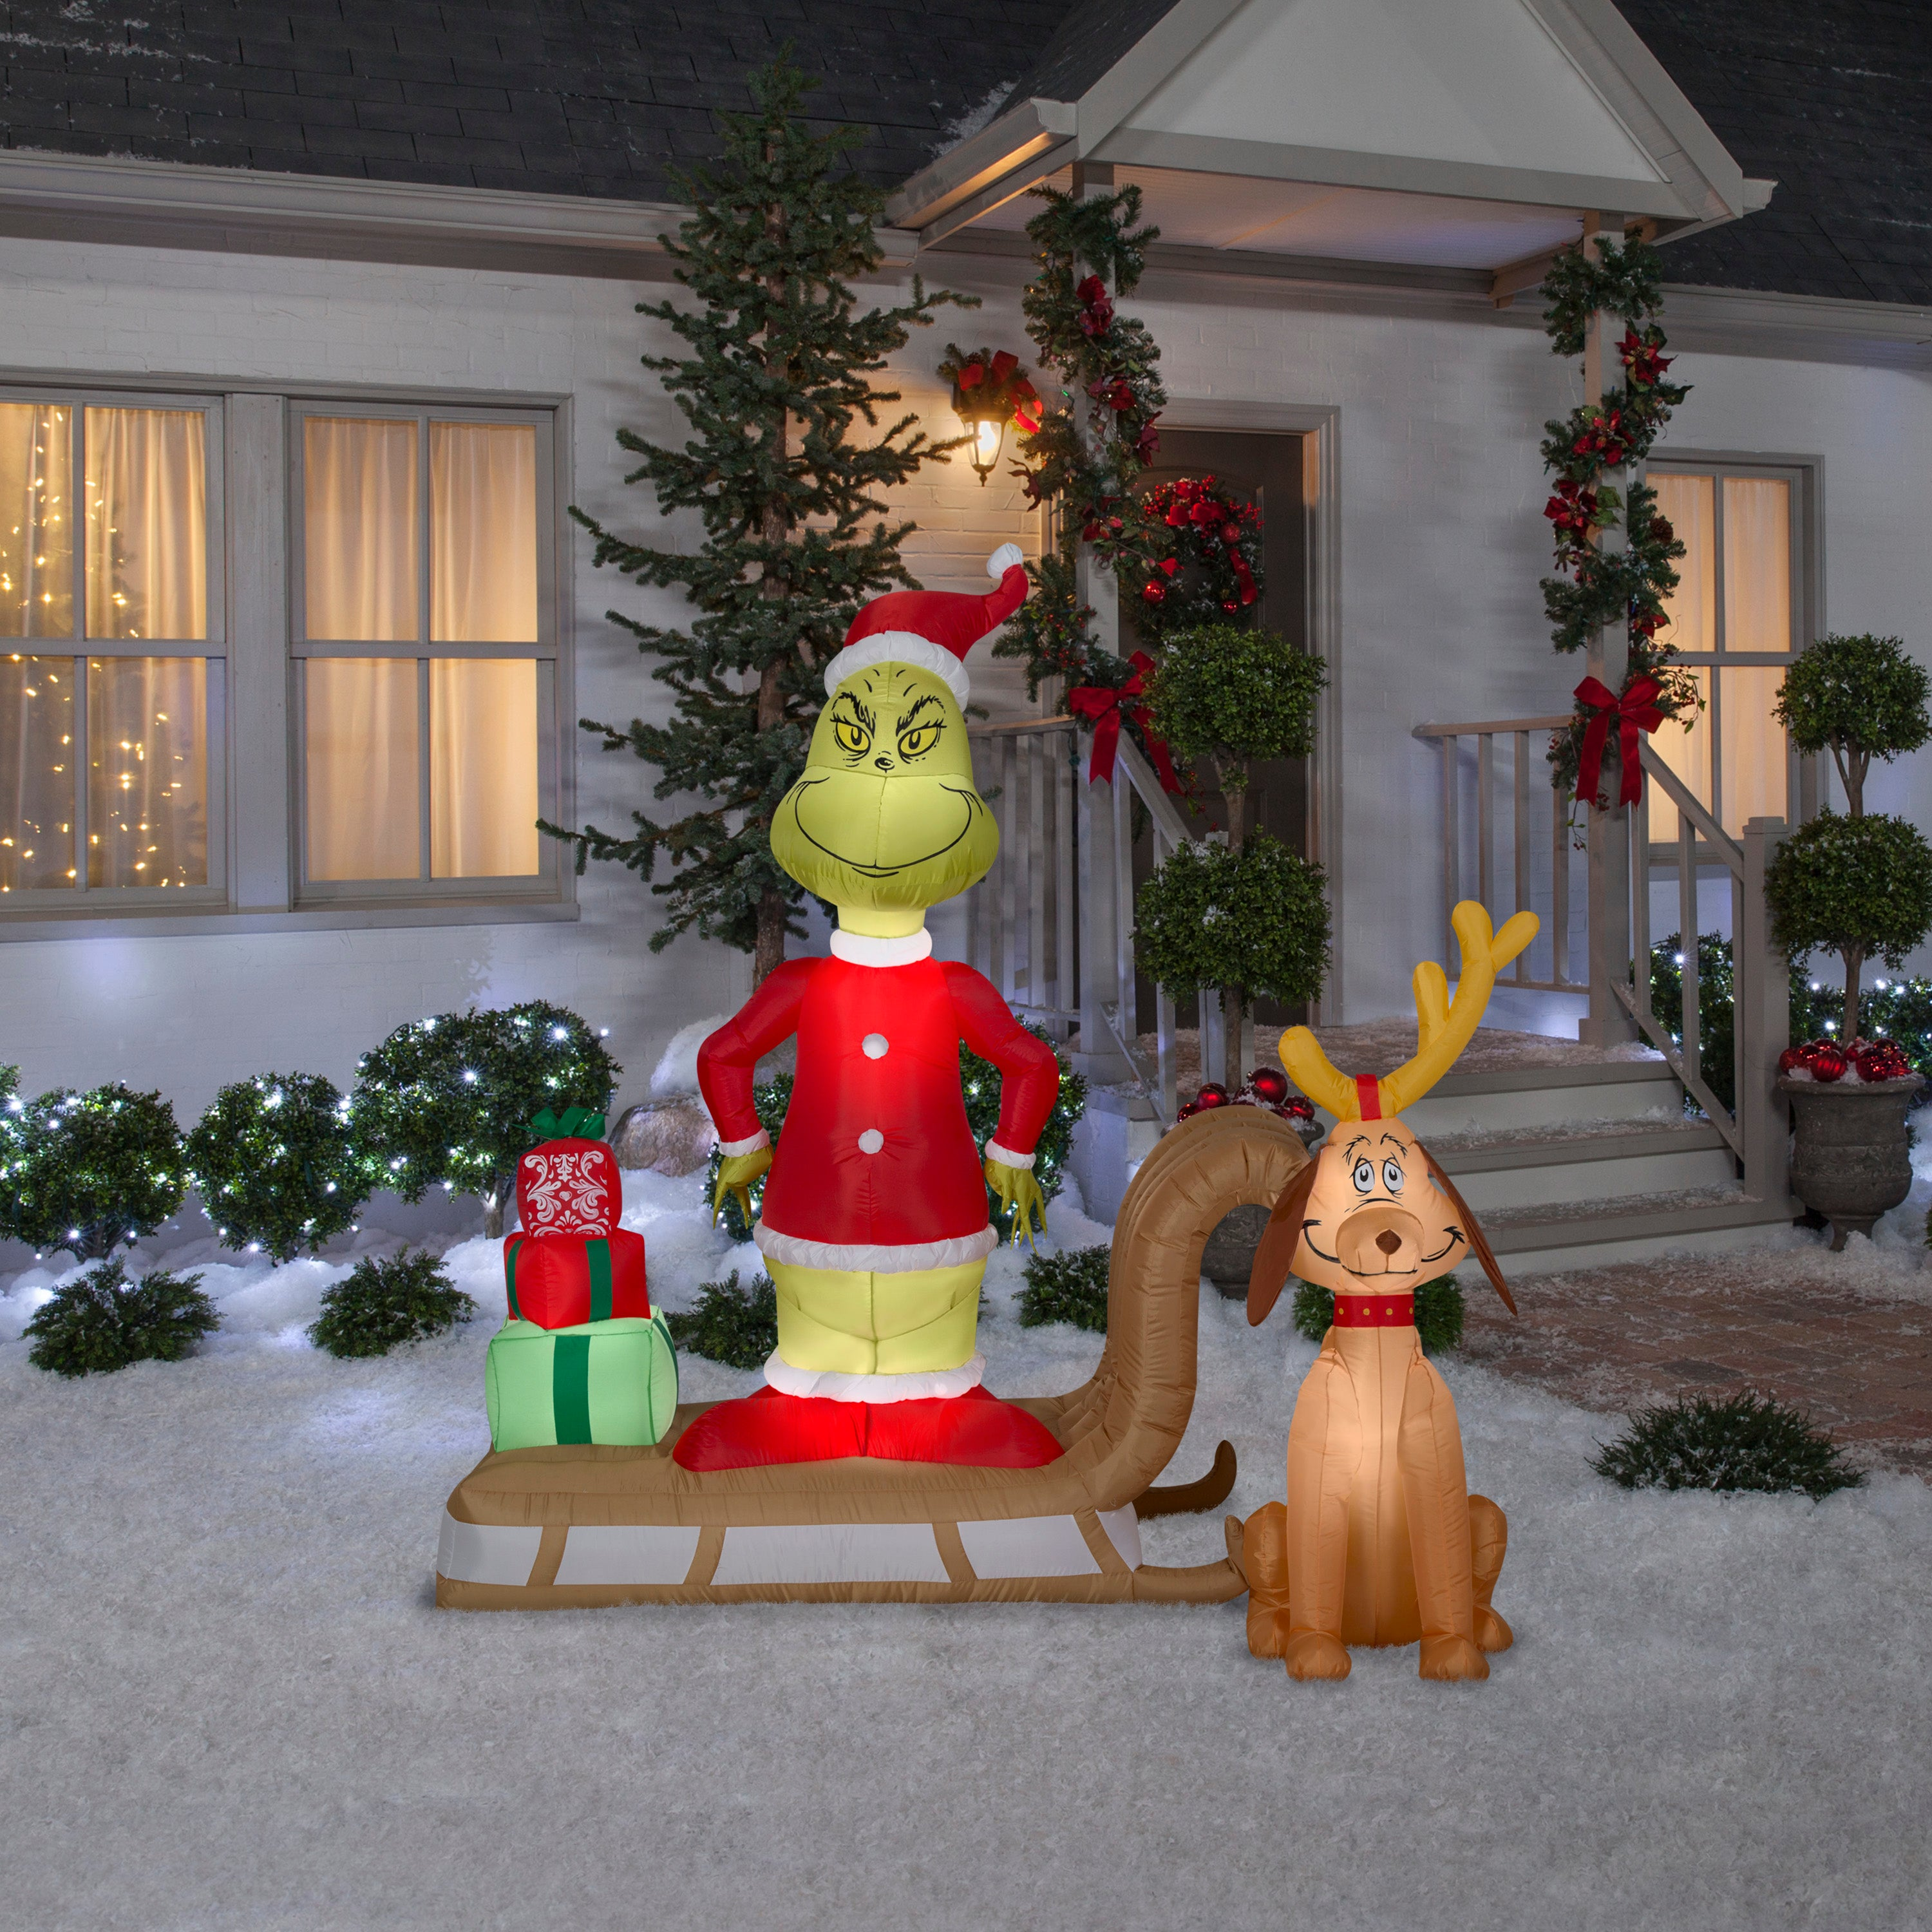 6' Airblown-Grinch and Max on Sled Christmas Inflatable